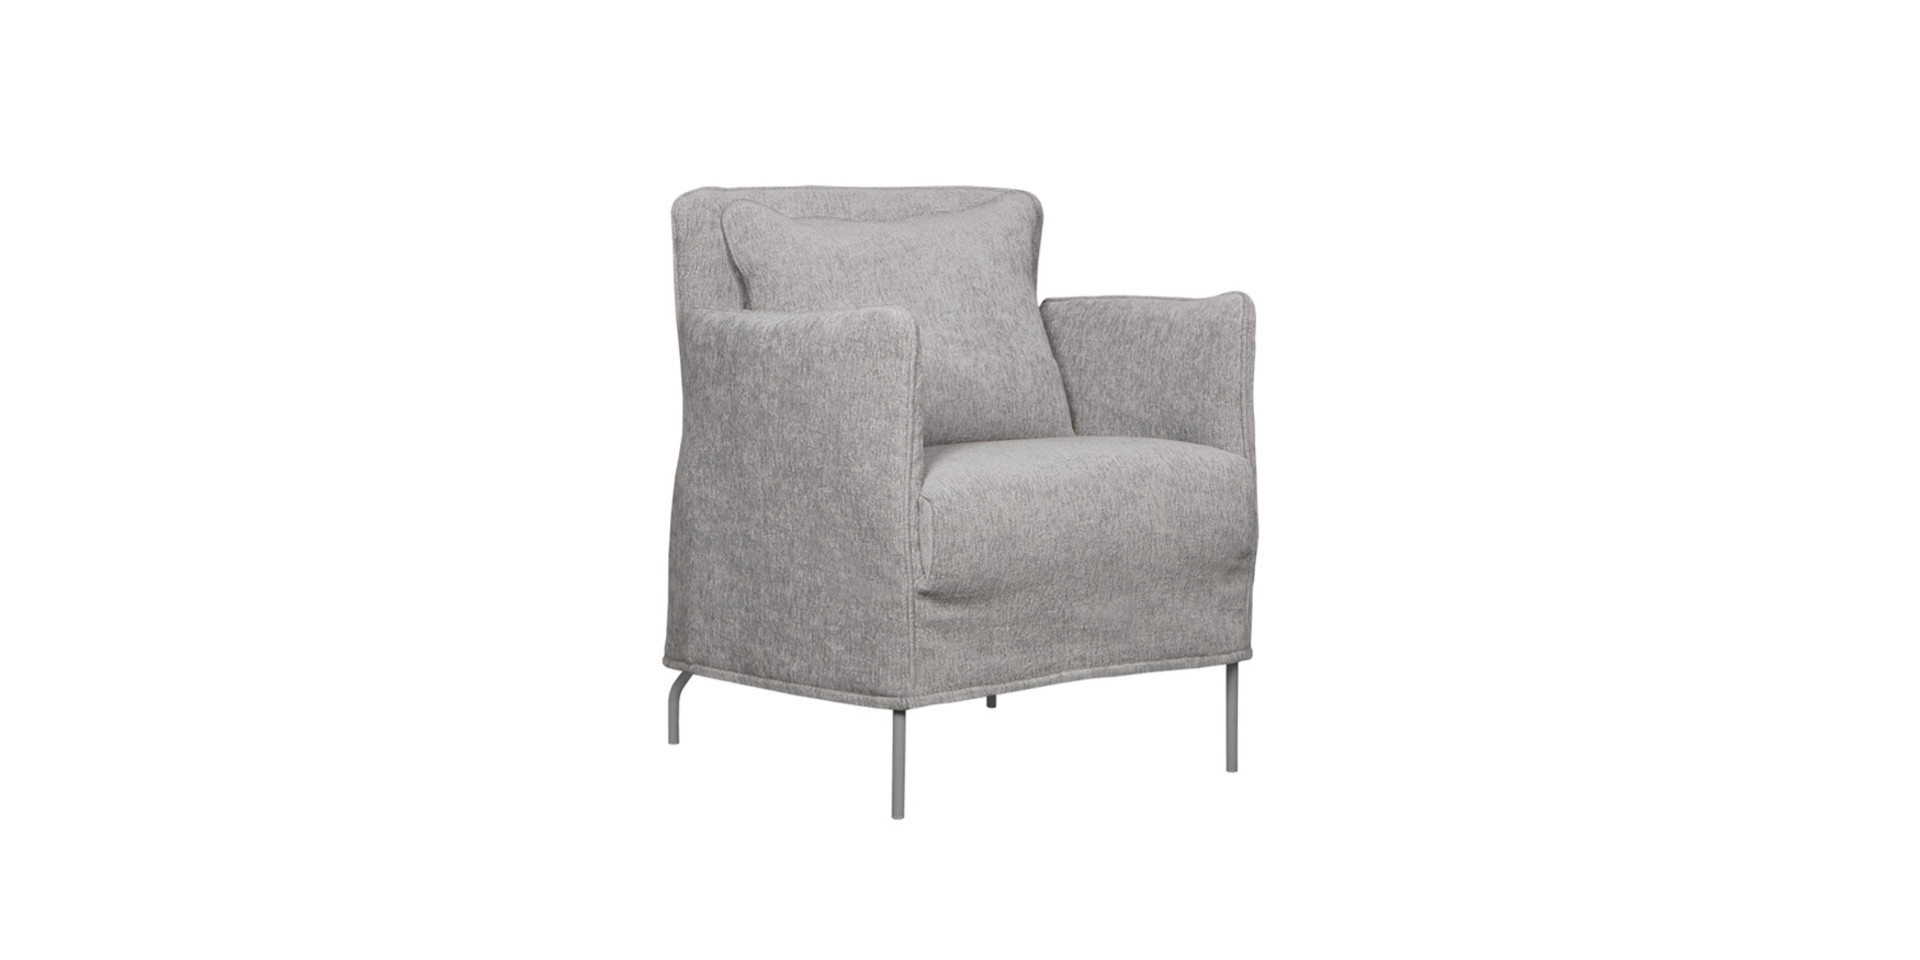 2CUTE_armchair_dion12_light_grey_2